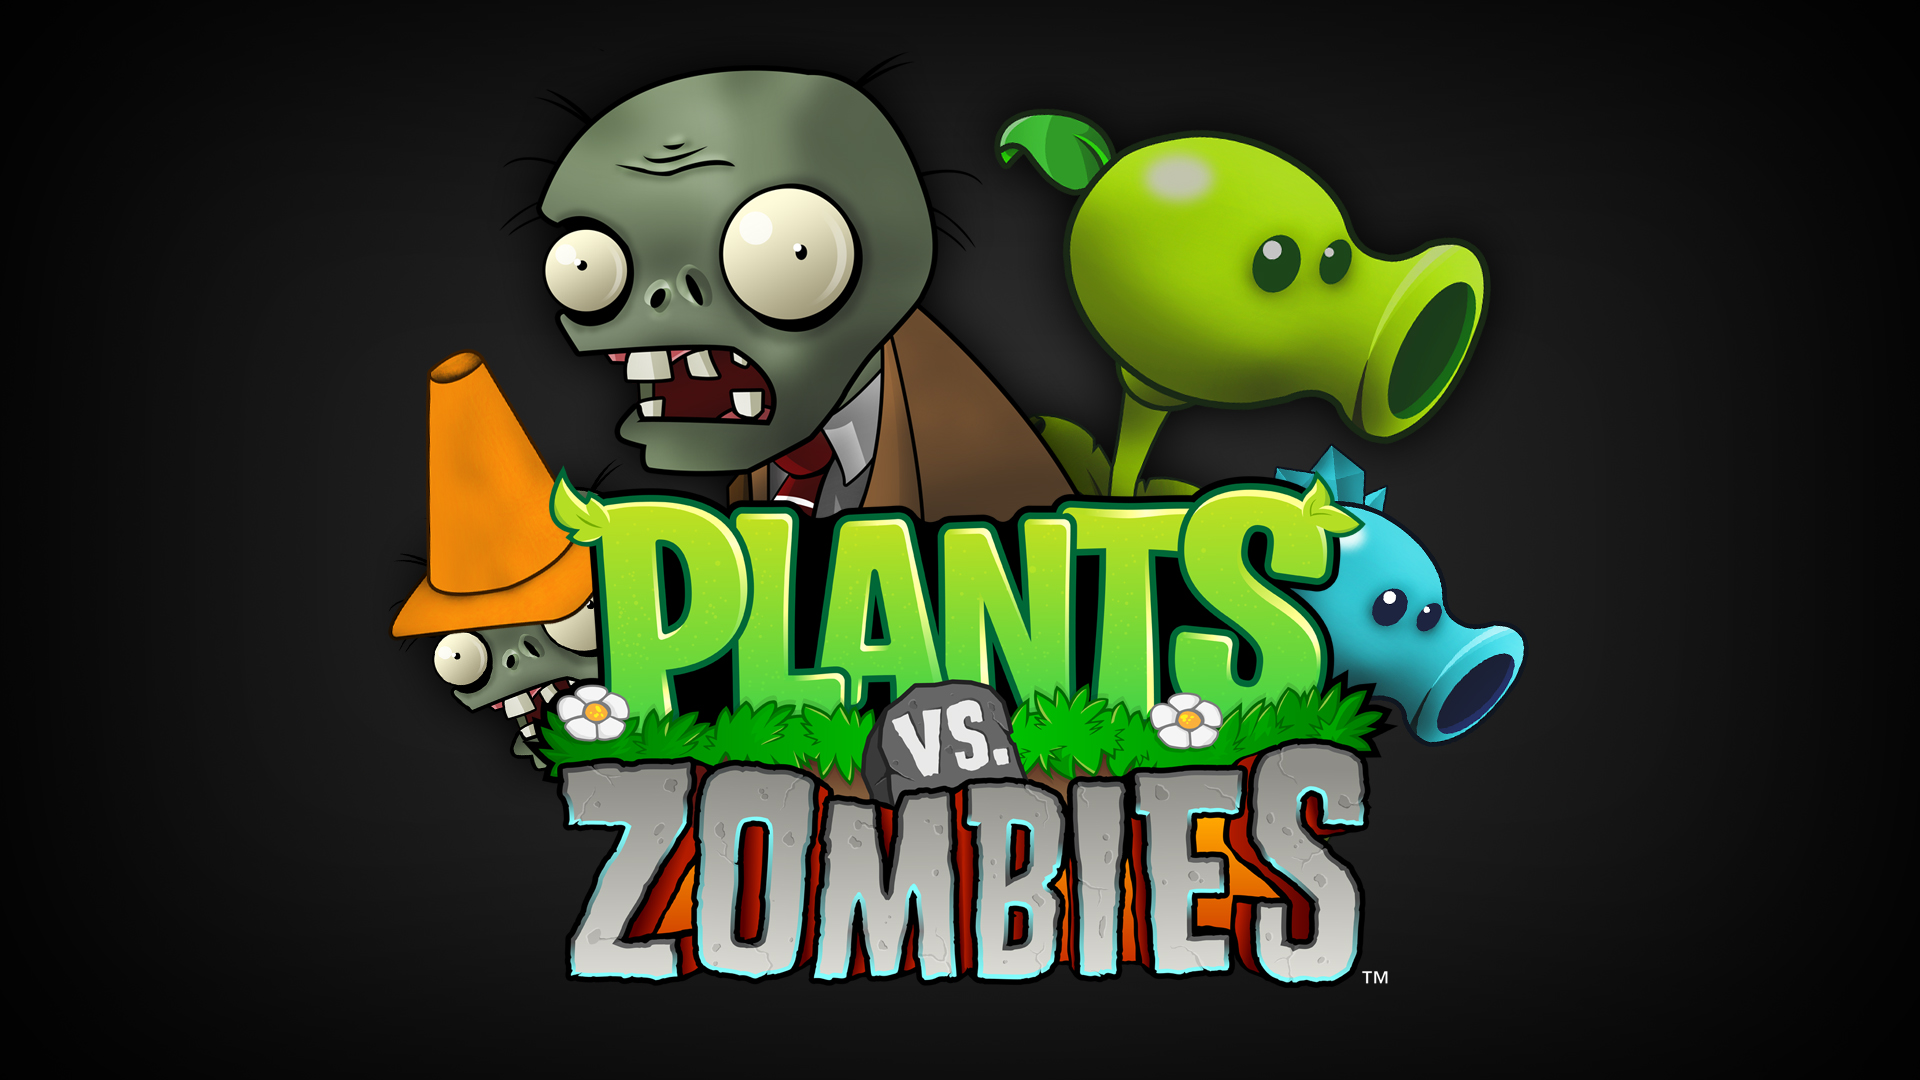 Plant Vs Zombies Wallpaper